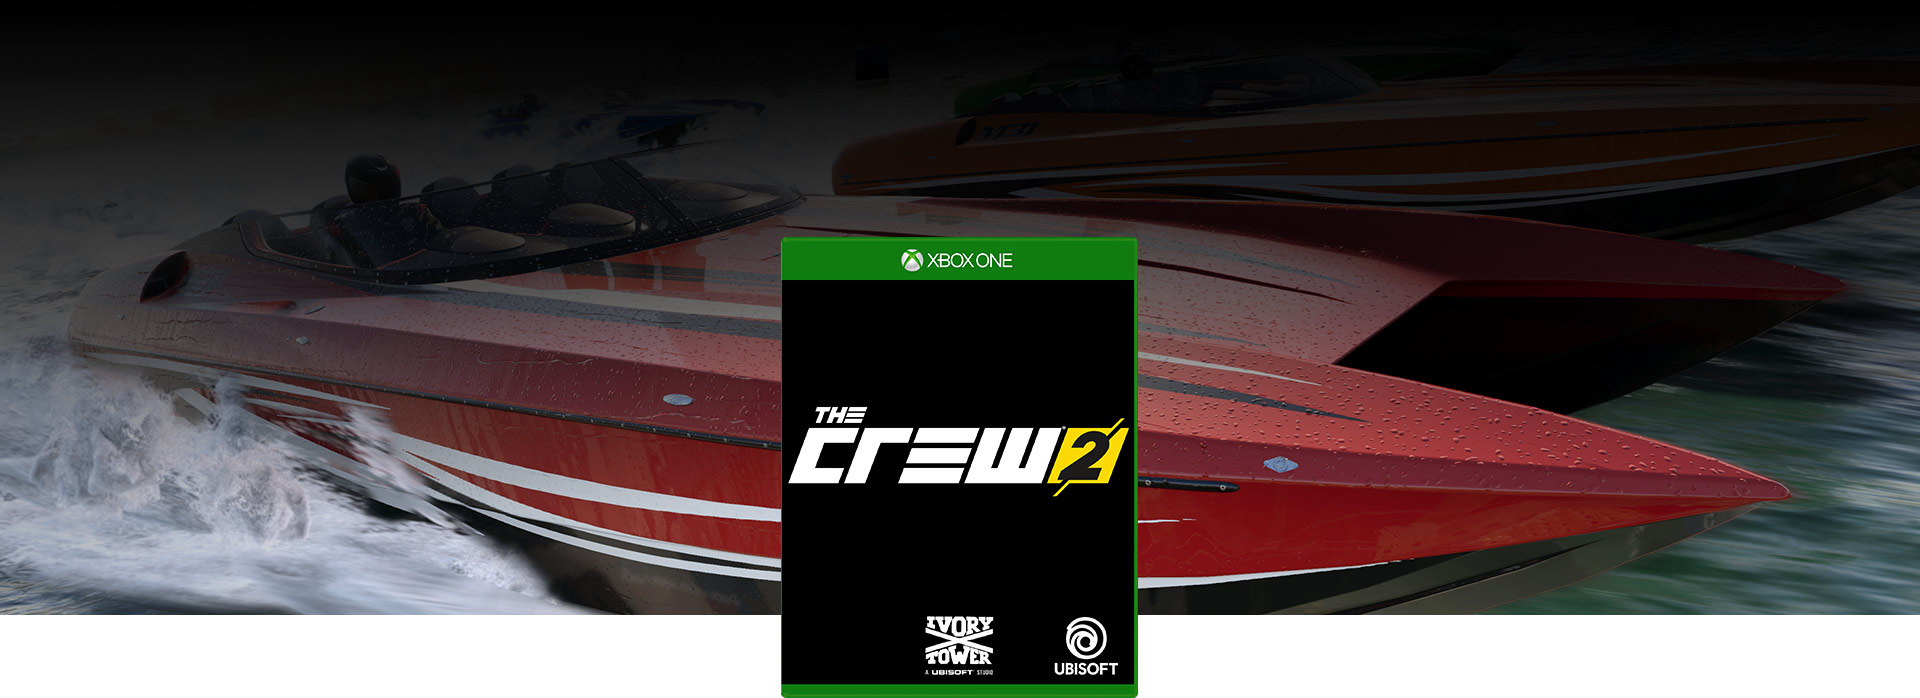 Crew 2-coverbillede